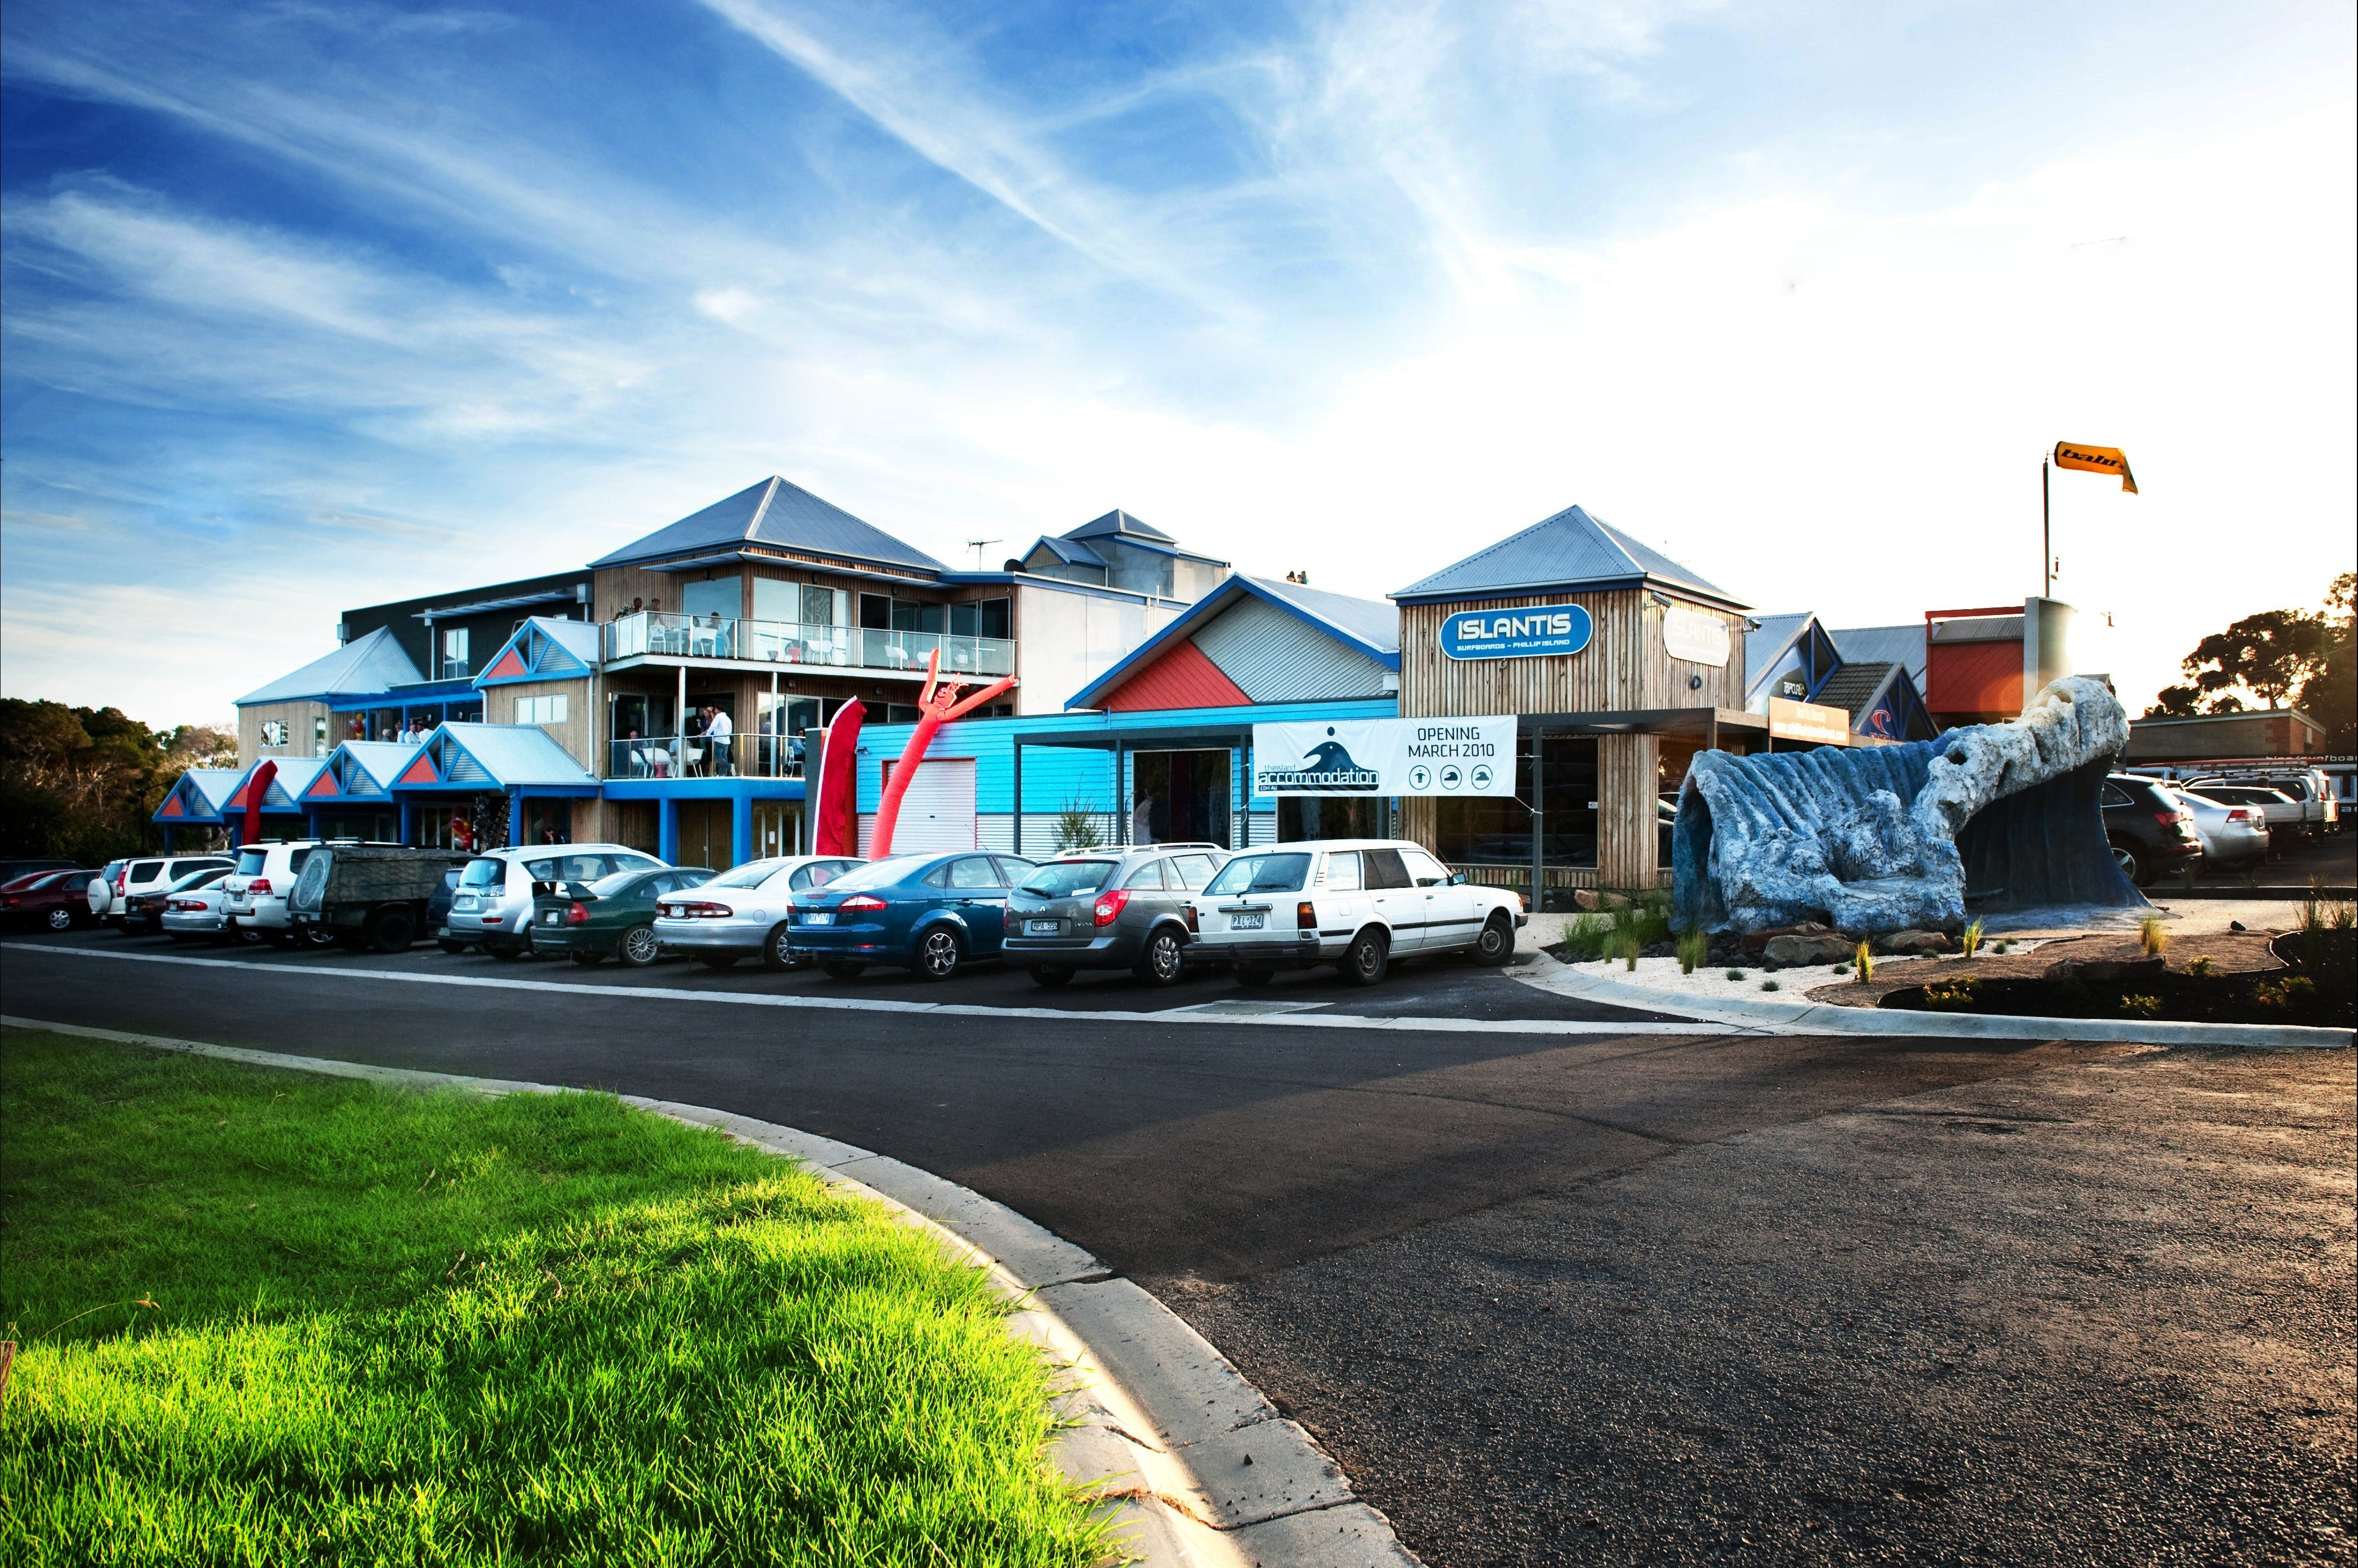 The Island Accommodation - Phillip Island YHA - Accommodation Resorts